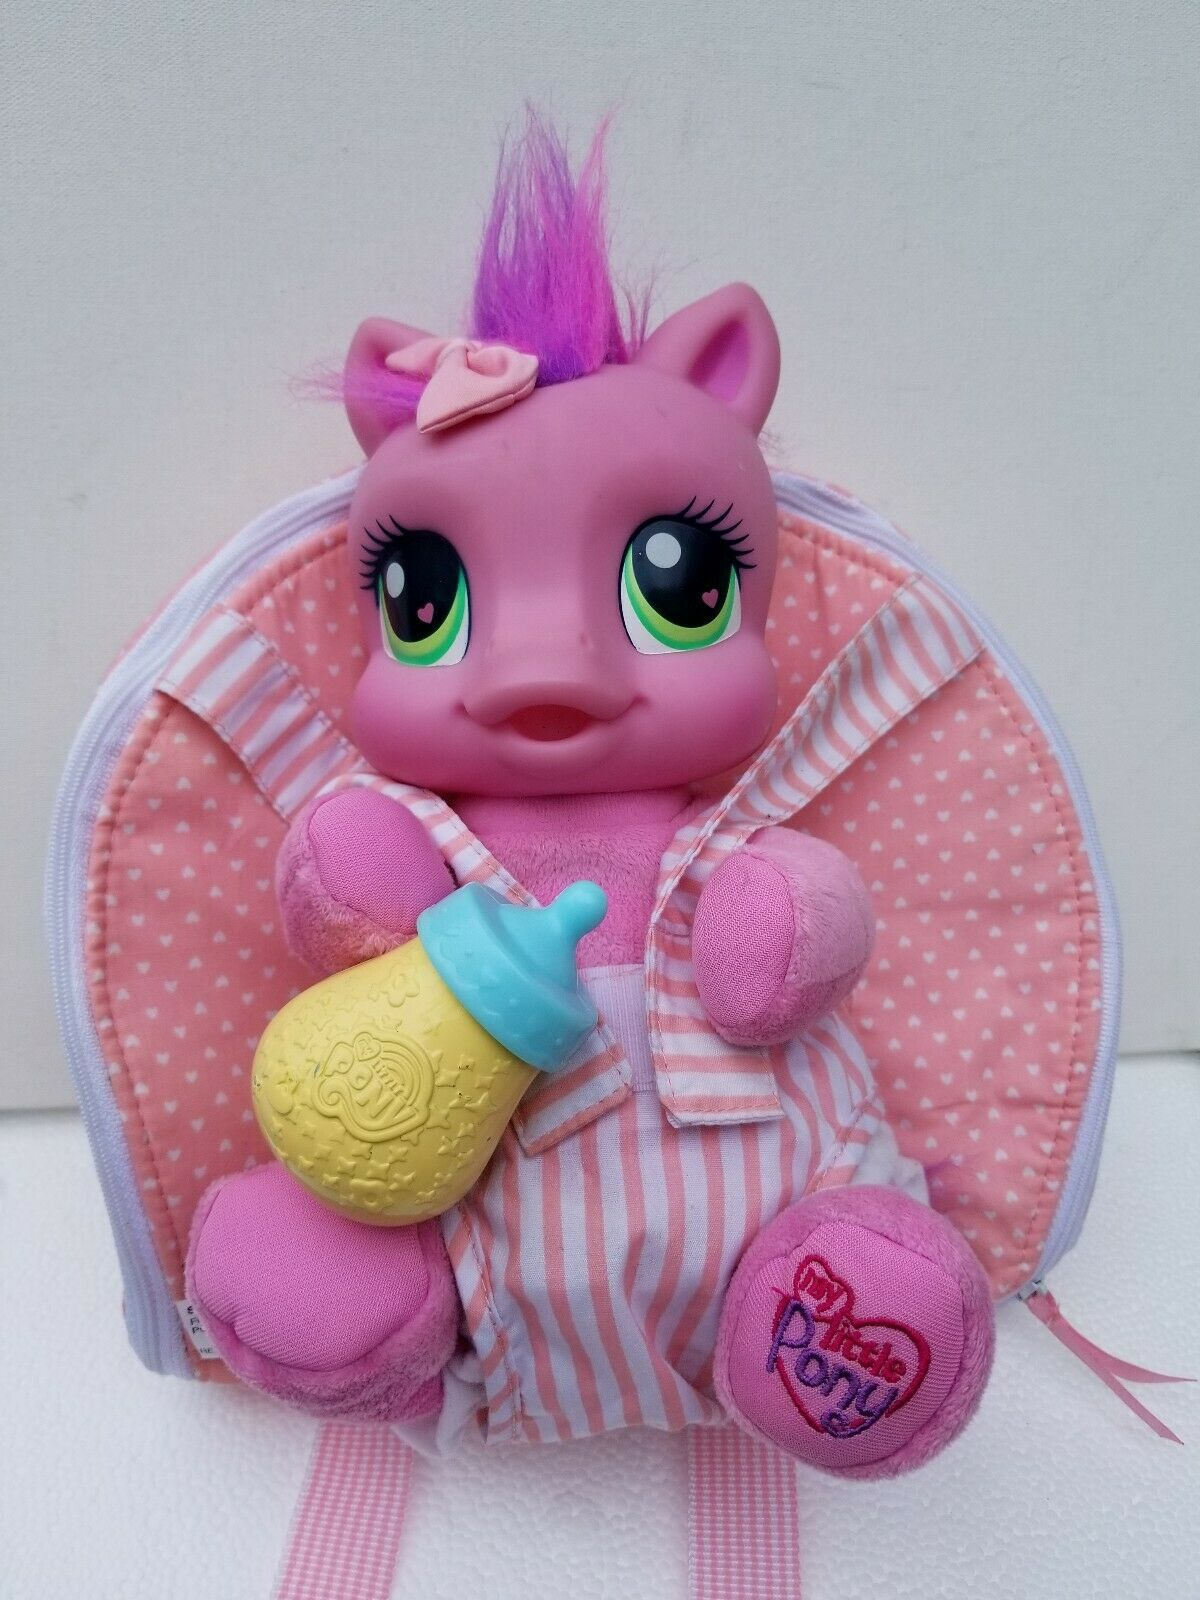 My klein Pony Discontinued Baby With Bottle Play And voiturery Bag Spielzeug Figure